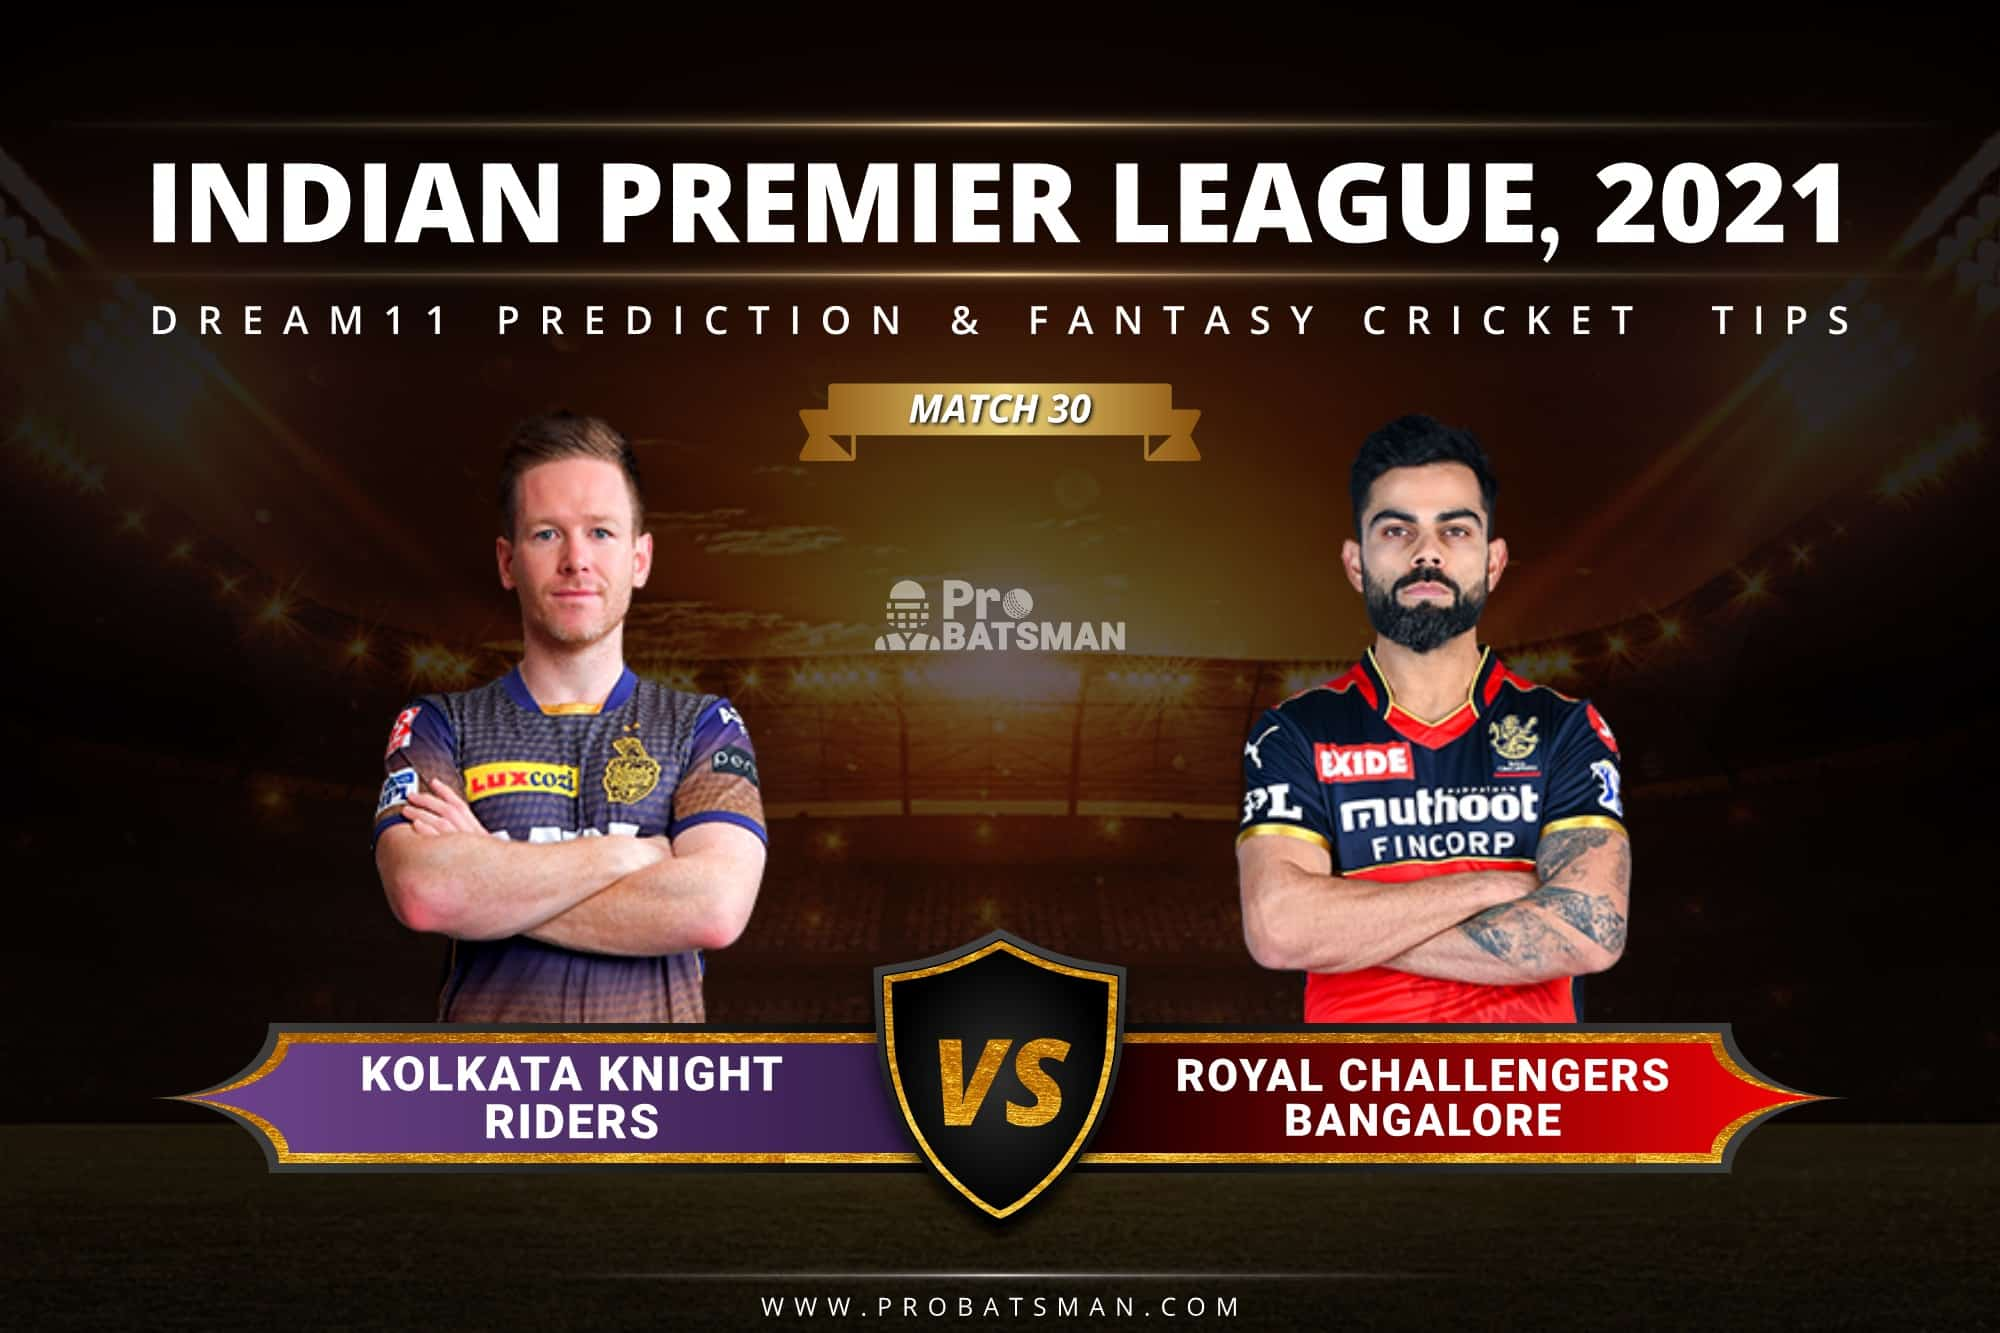 KKR vs RCB Dream11 Prediction: Fantasy Cricket Tips, Playing XI, Pitch Report, Stats & Injury Updates of Match 30, IPL 2021